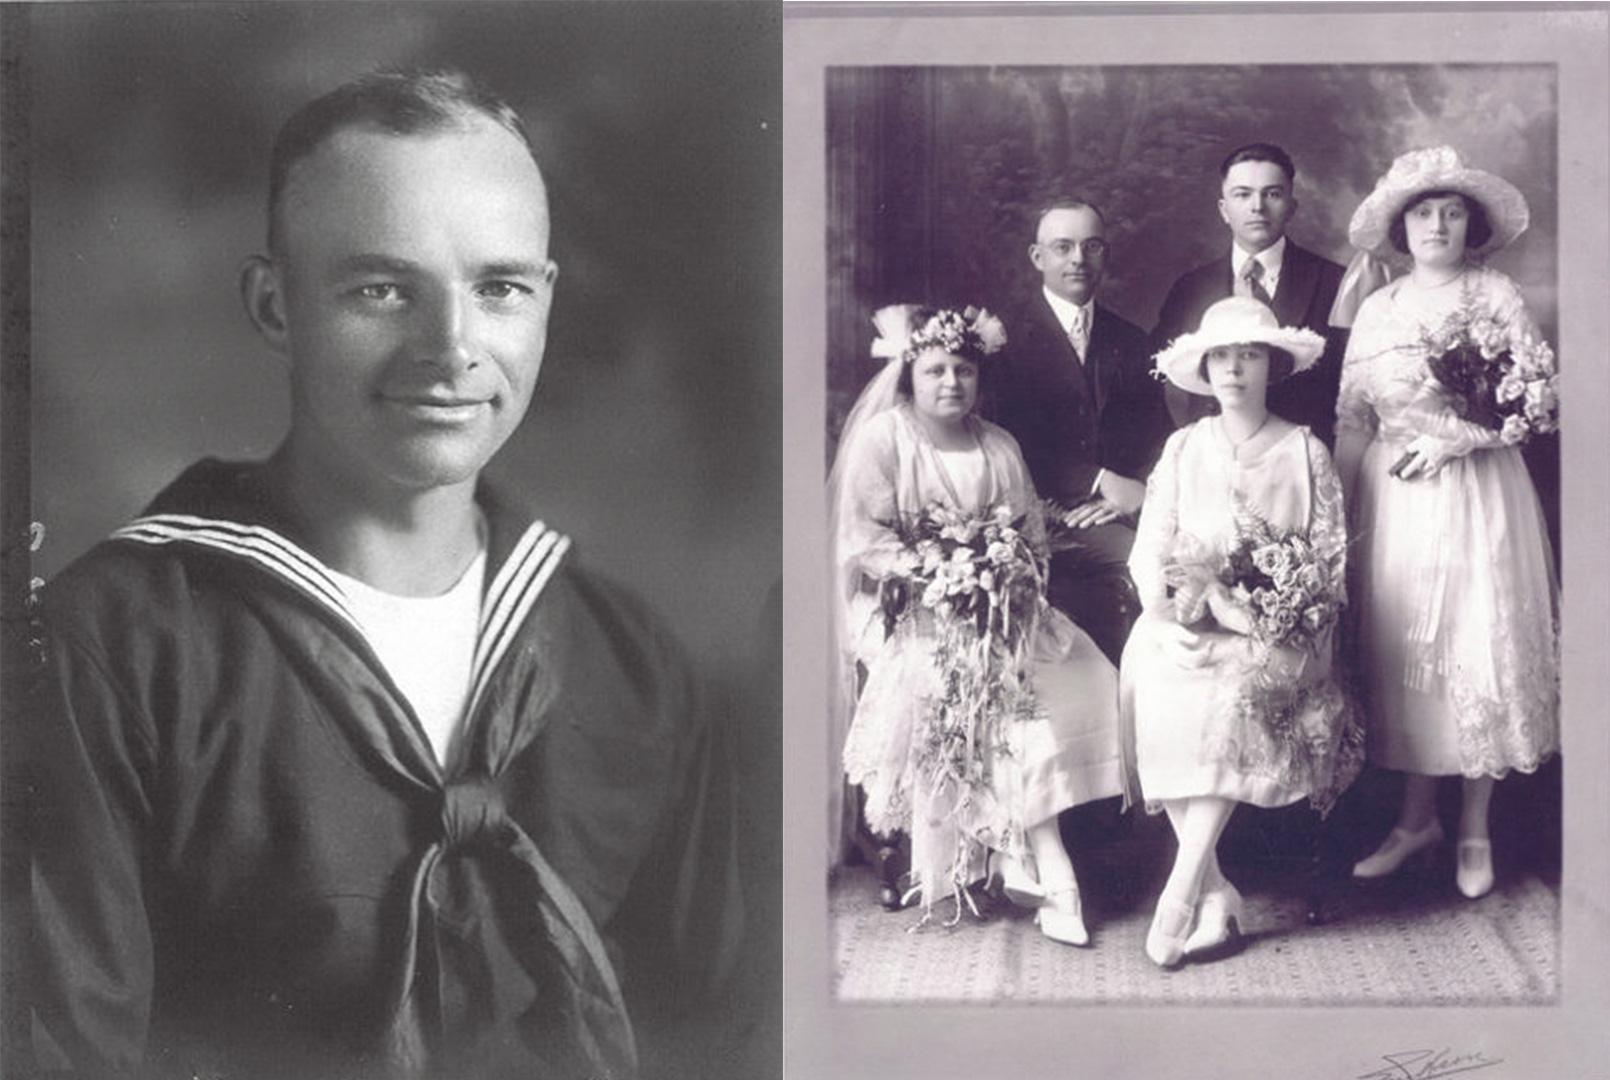 1914 Tim Spaeder's Grandfather on the left and grandparents wedding photo on the right